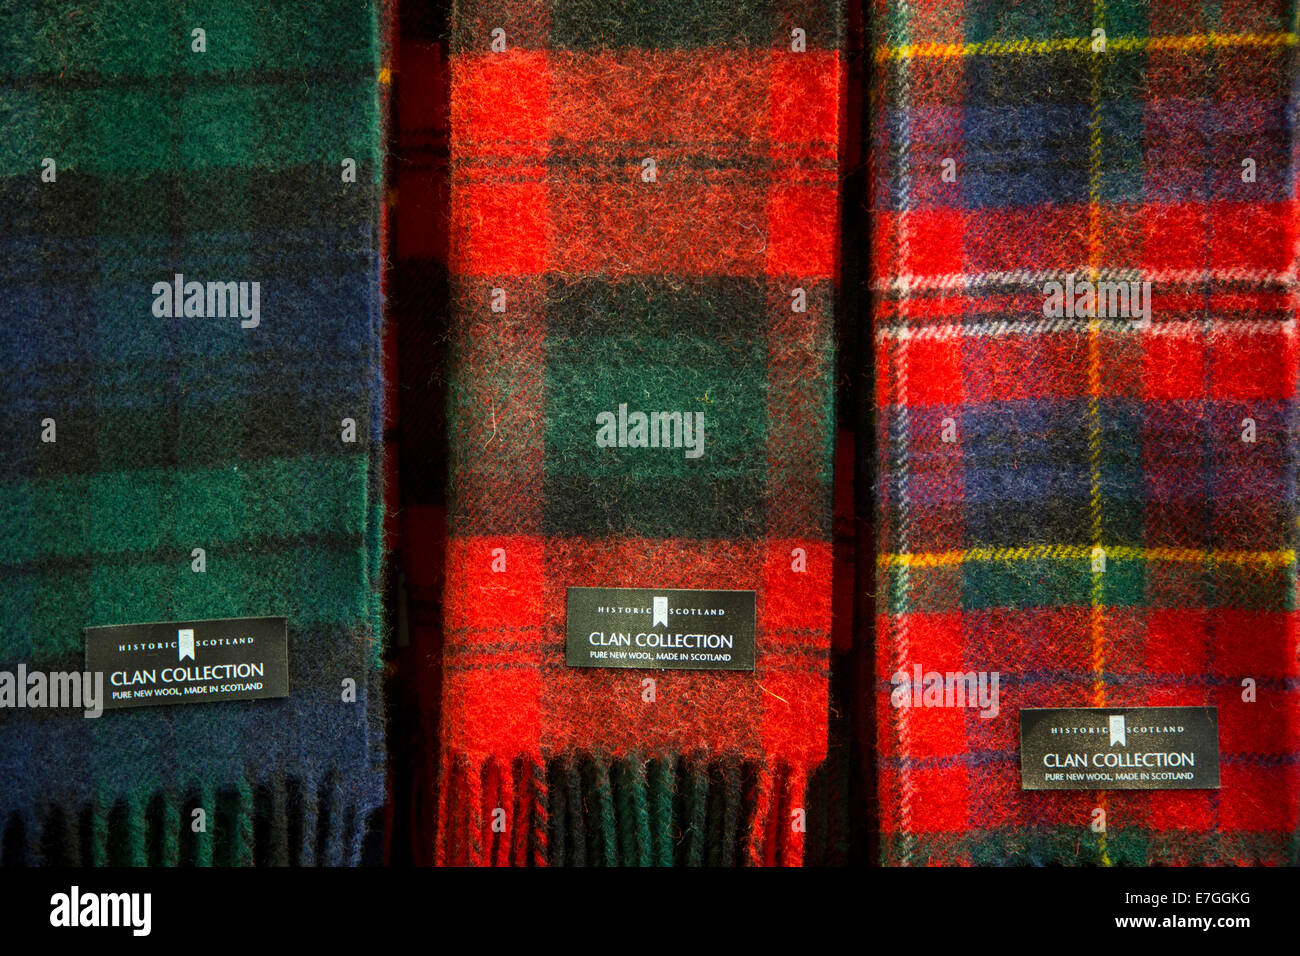 Scottish Tartan scarves for sale in the Hightlands, Scotland - Stock Image